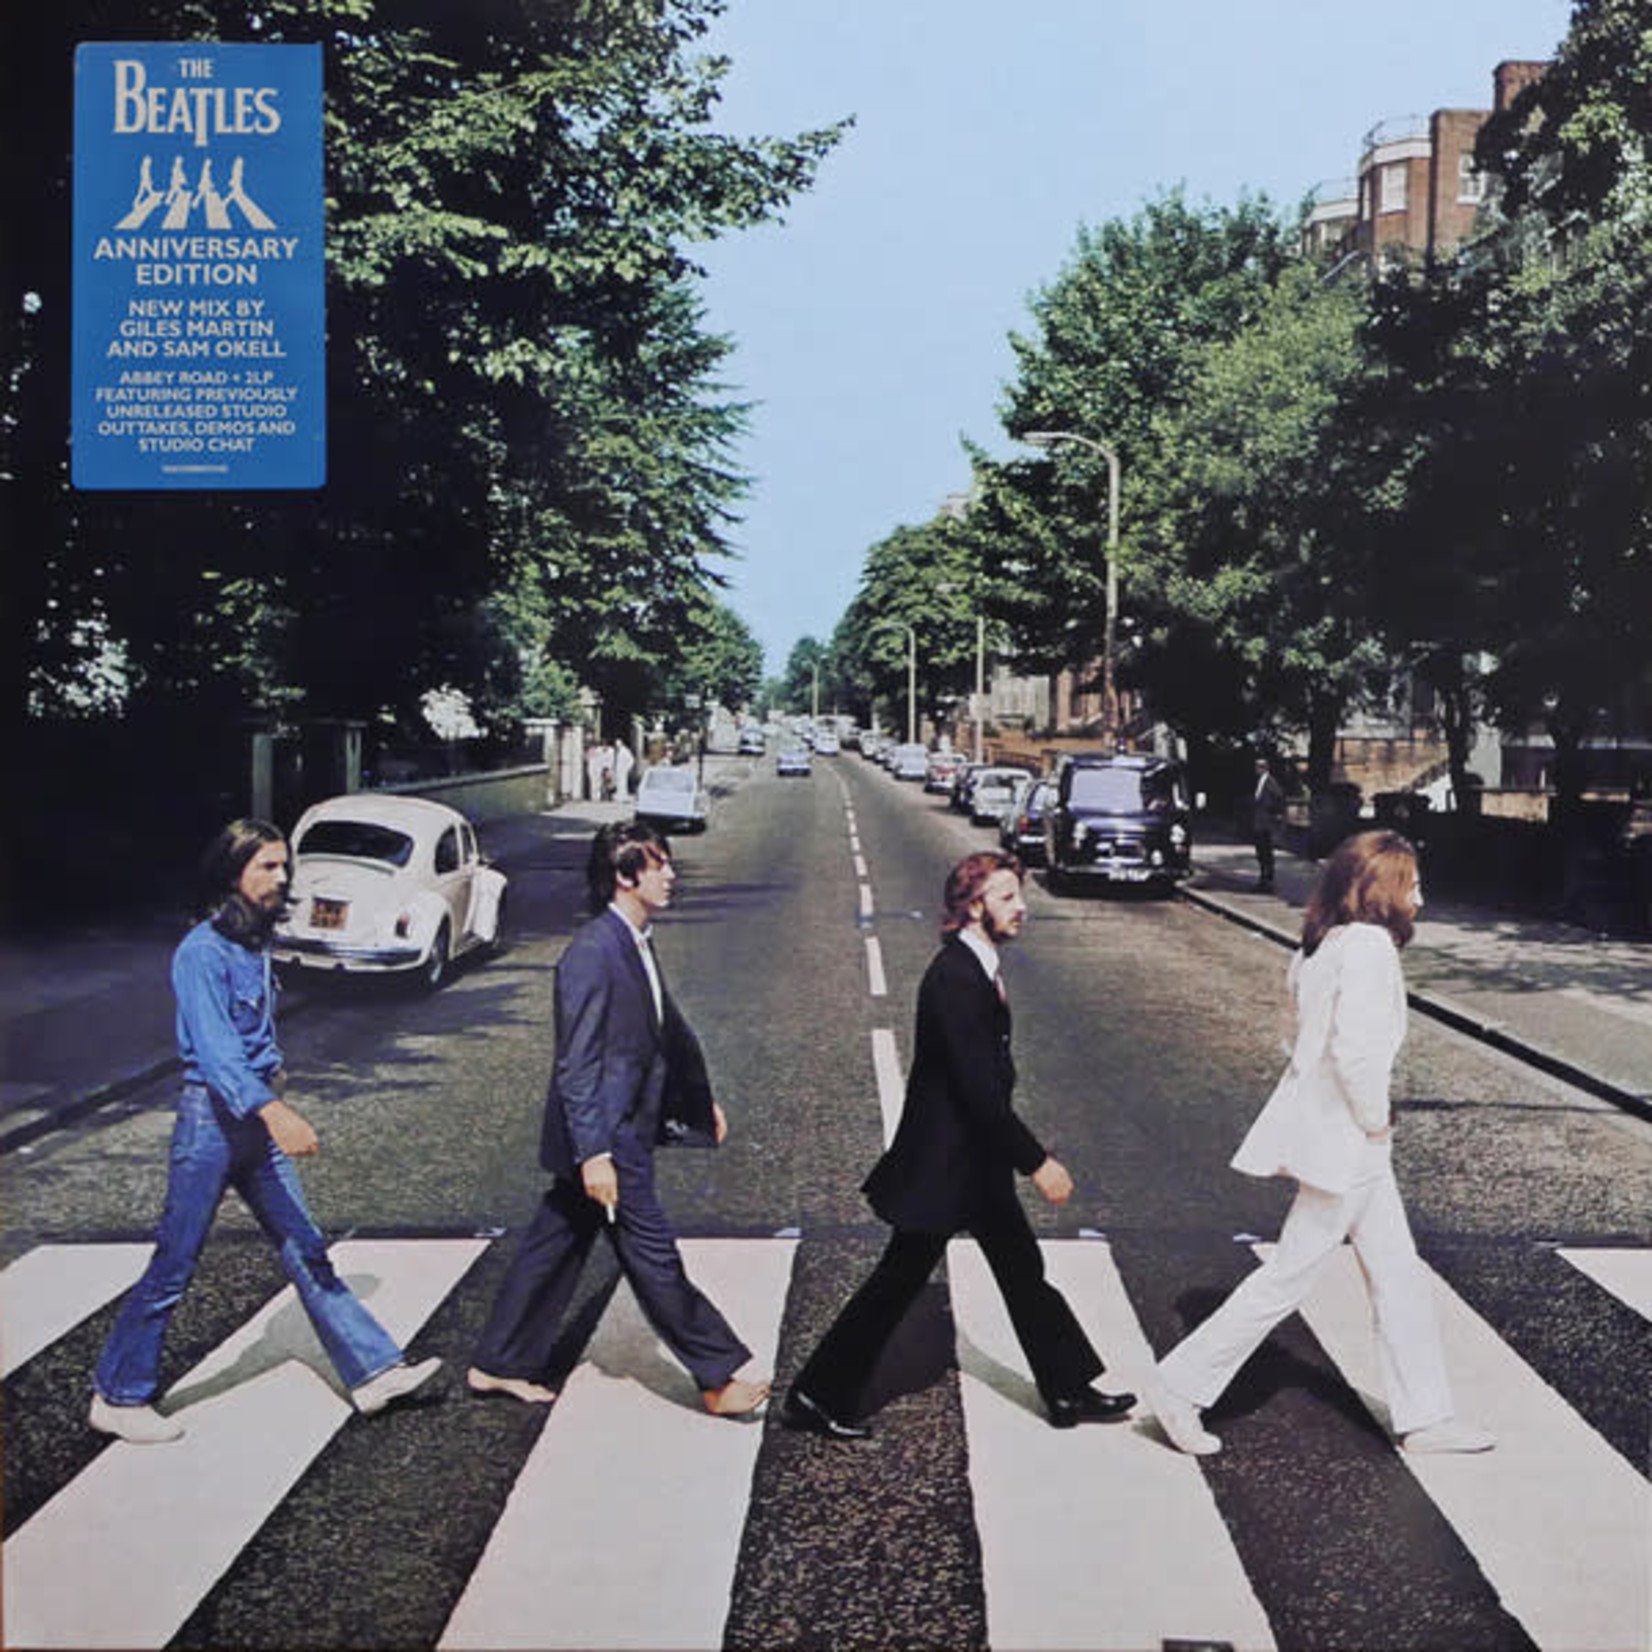 THE BEATLES ABBEY ROAD ANNIVERSARY SUPER DELUXE EDITION 3LP SET